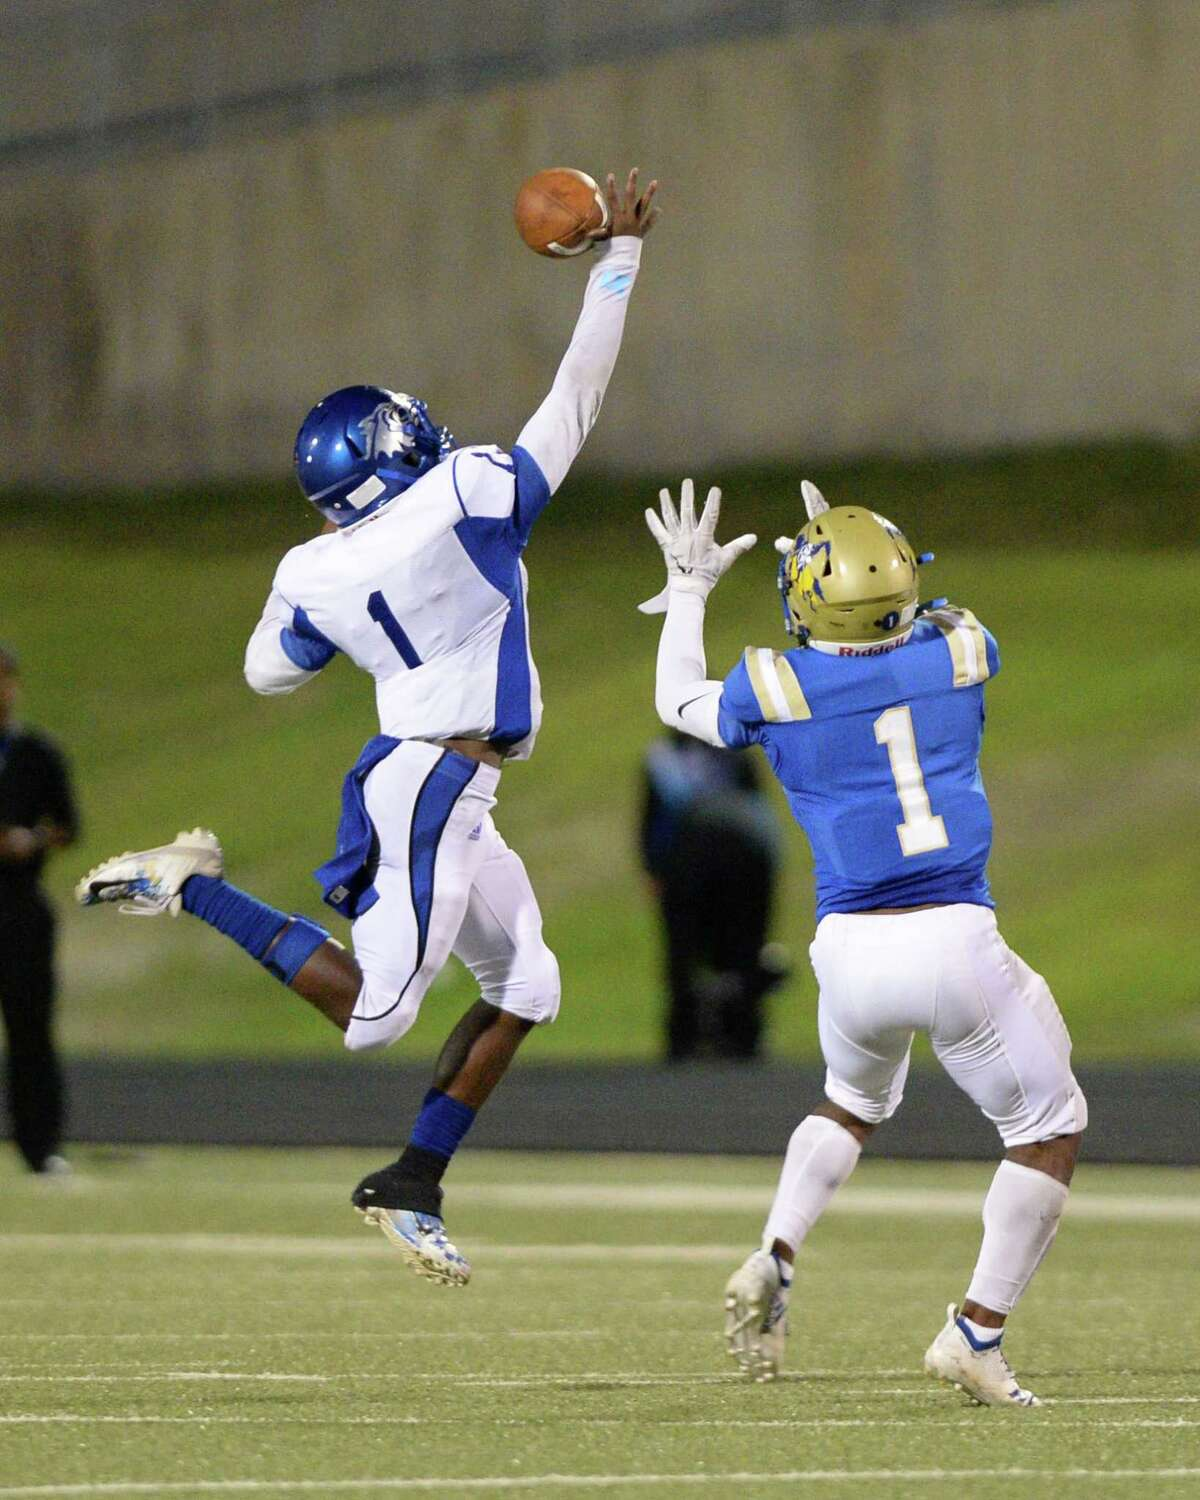 DeVaughn Wilson (1) of Chavez breaks up a pass intended for Jacory Lee (1) of Elkins during the second quarter of a non-district football game between the Elkins Knights and the Chavez Lobos on Thursday, September 12, 2019 at Hall Stadium, Missouri City, TX.